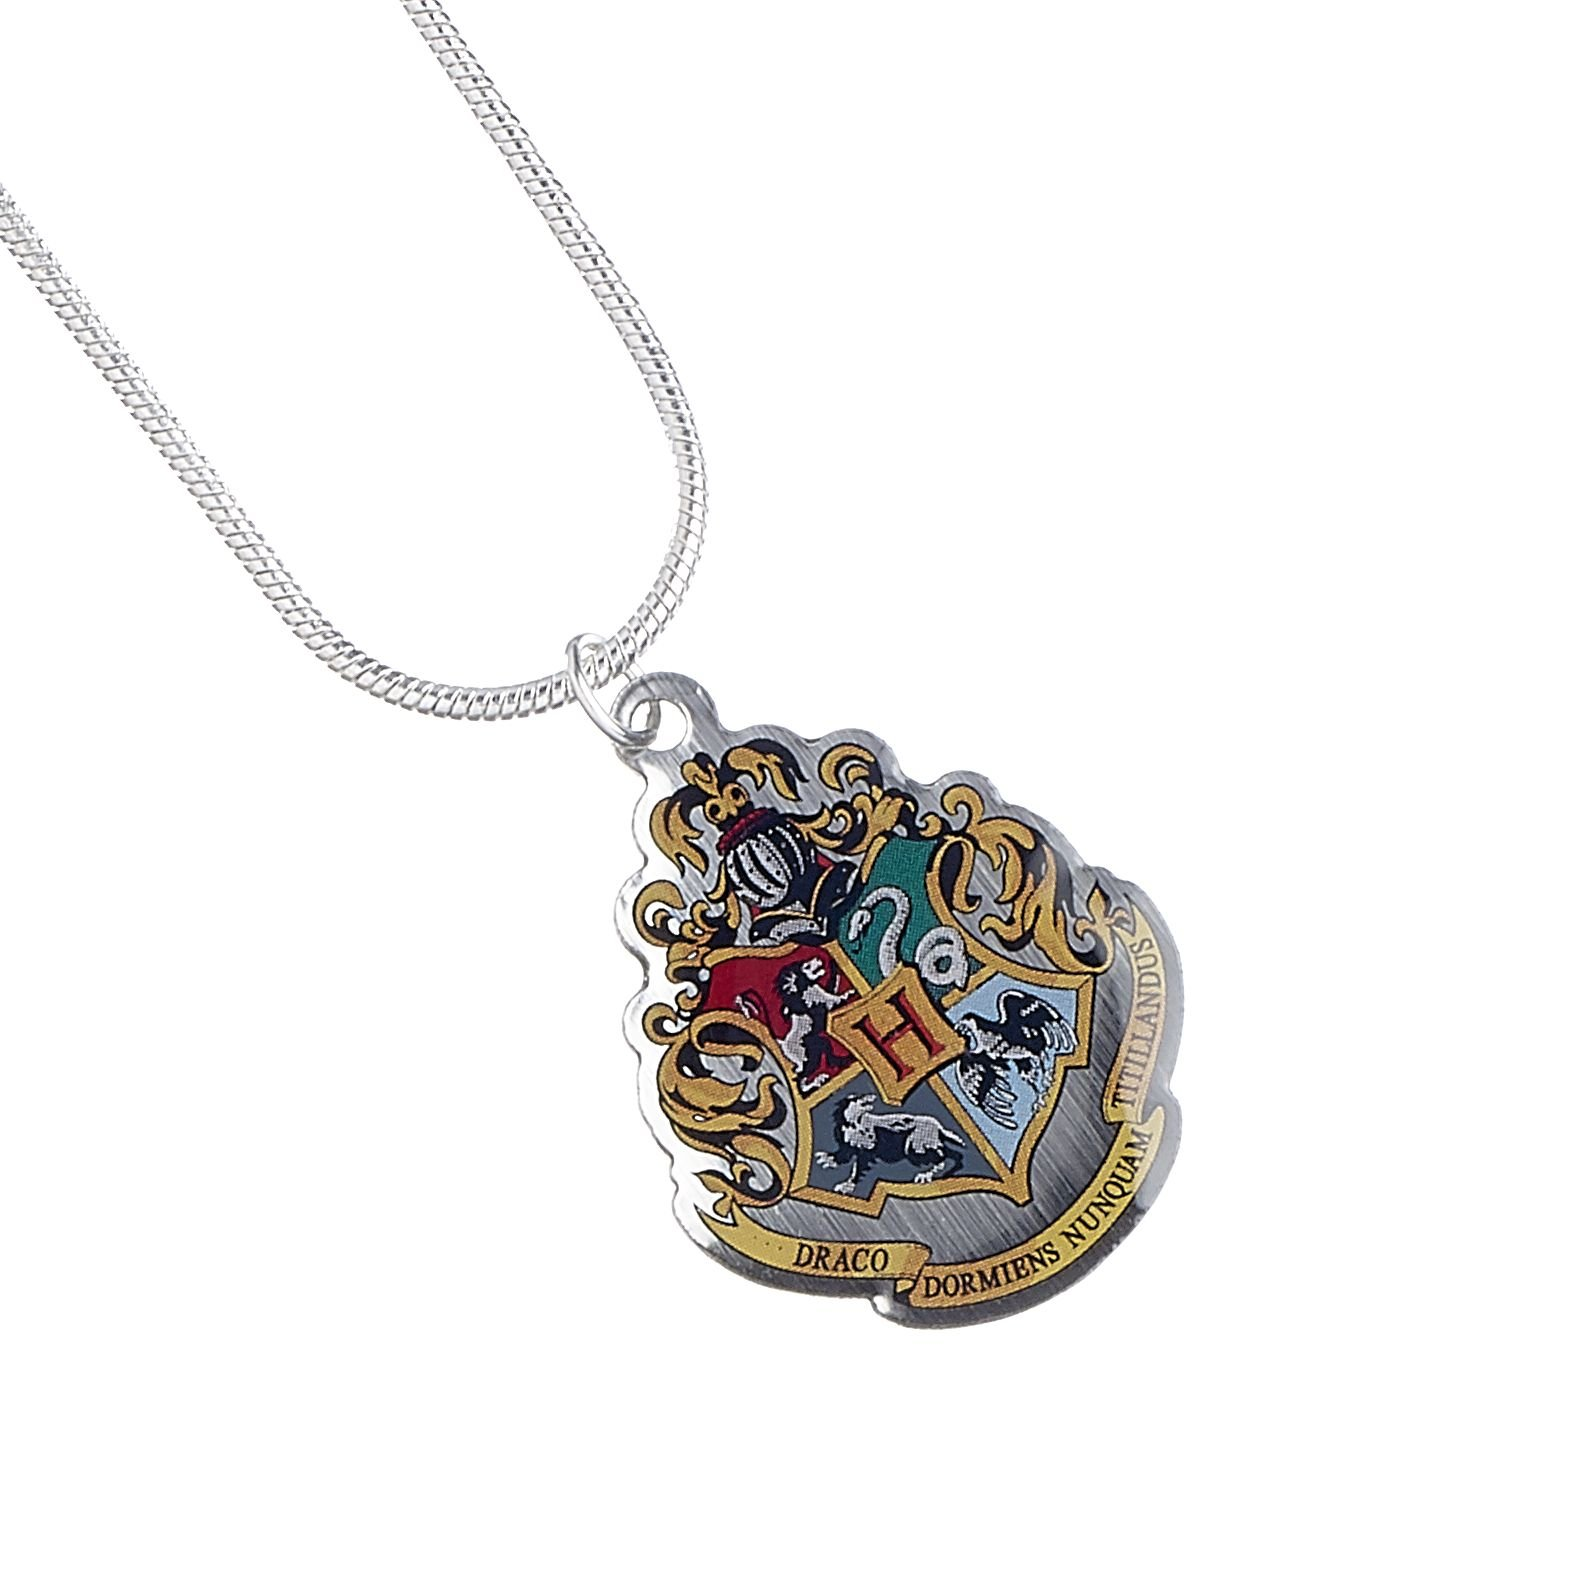 Harry Potter Official Licensed Jewelry Themed Necklaces (Hogwarts Crest)